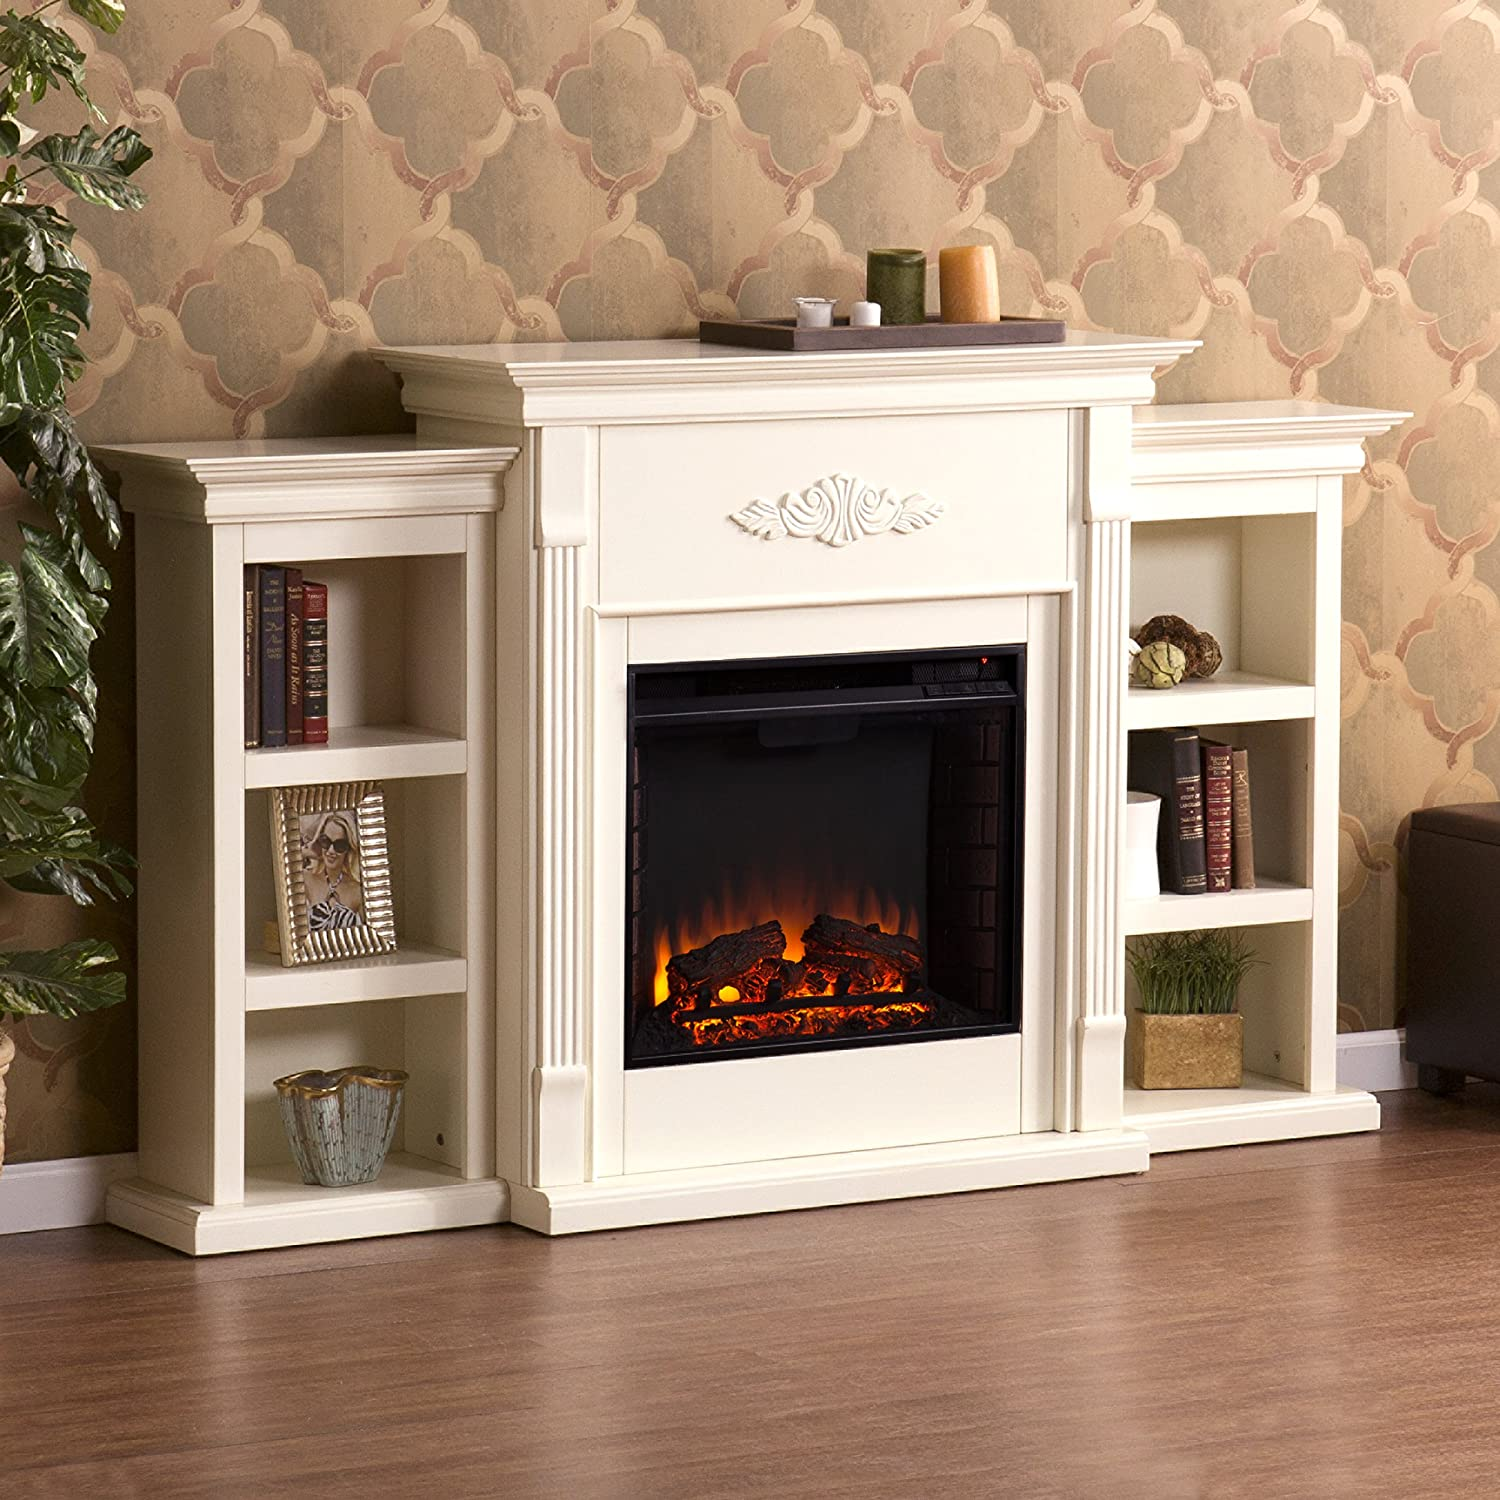 amazon com tennyson electric fireplace w bookcases ivory